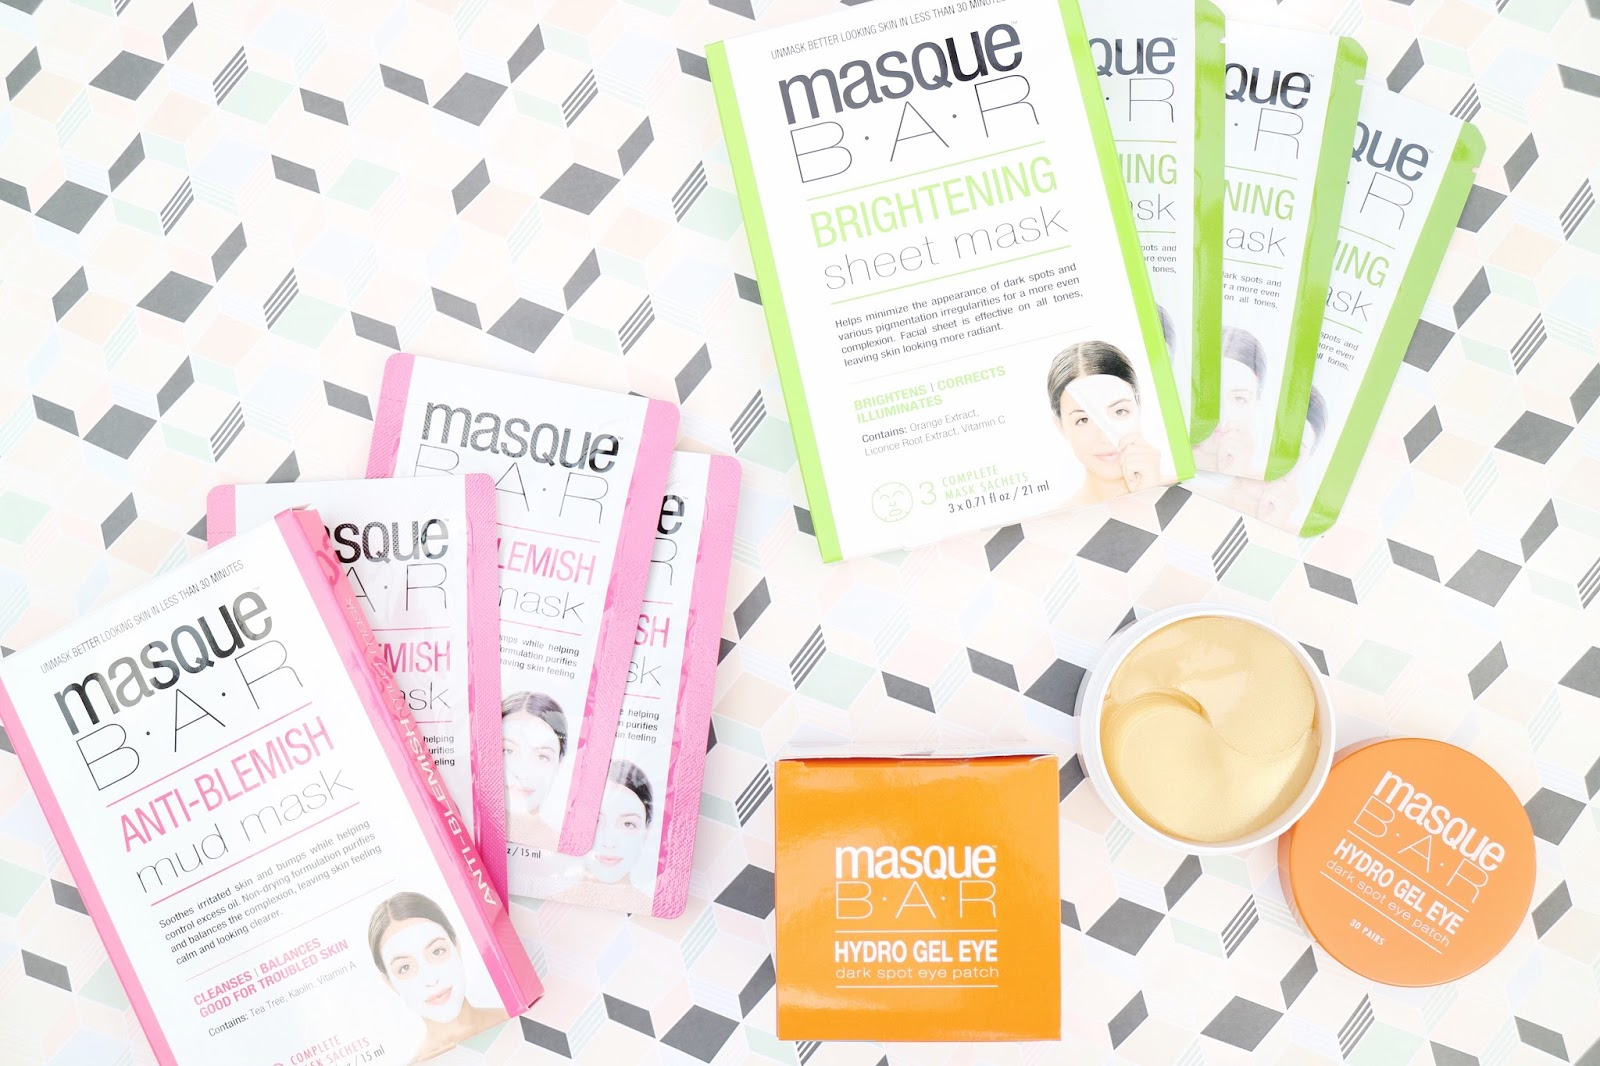 Masque Bar Face Masks Review